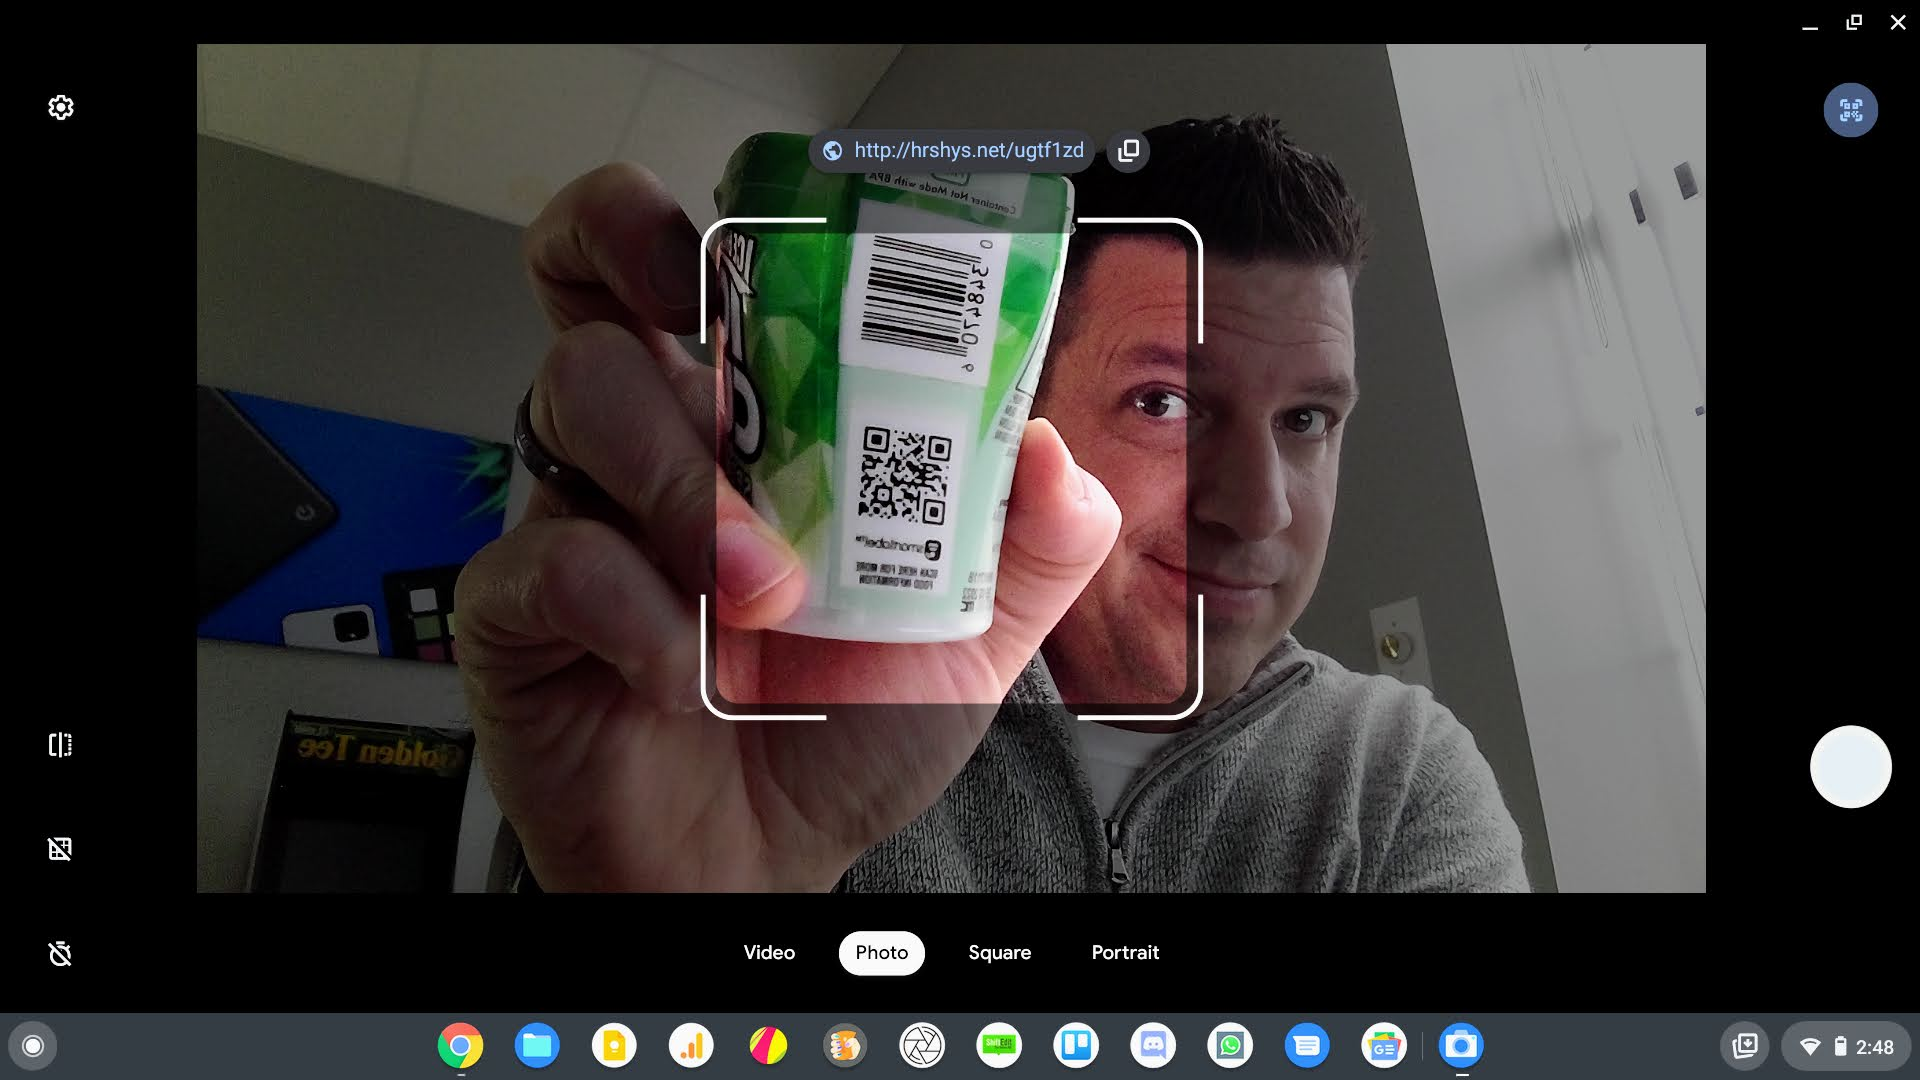 Chromebooks will be getting a QR code scanner in Chrome OS 89